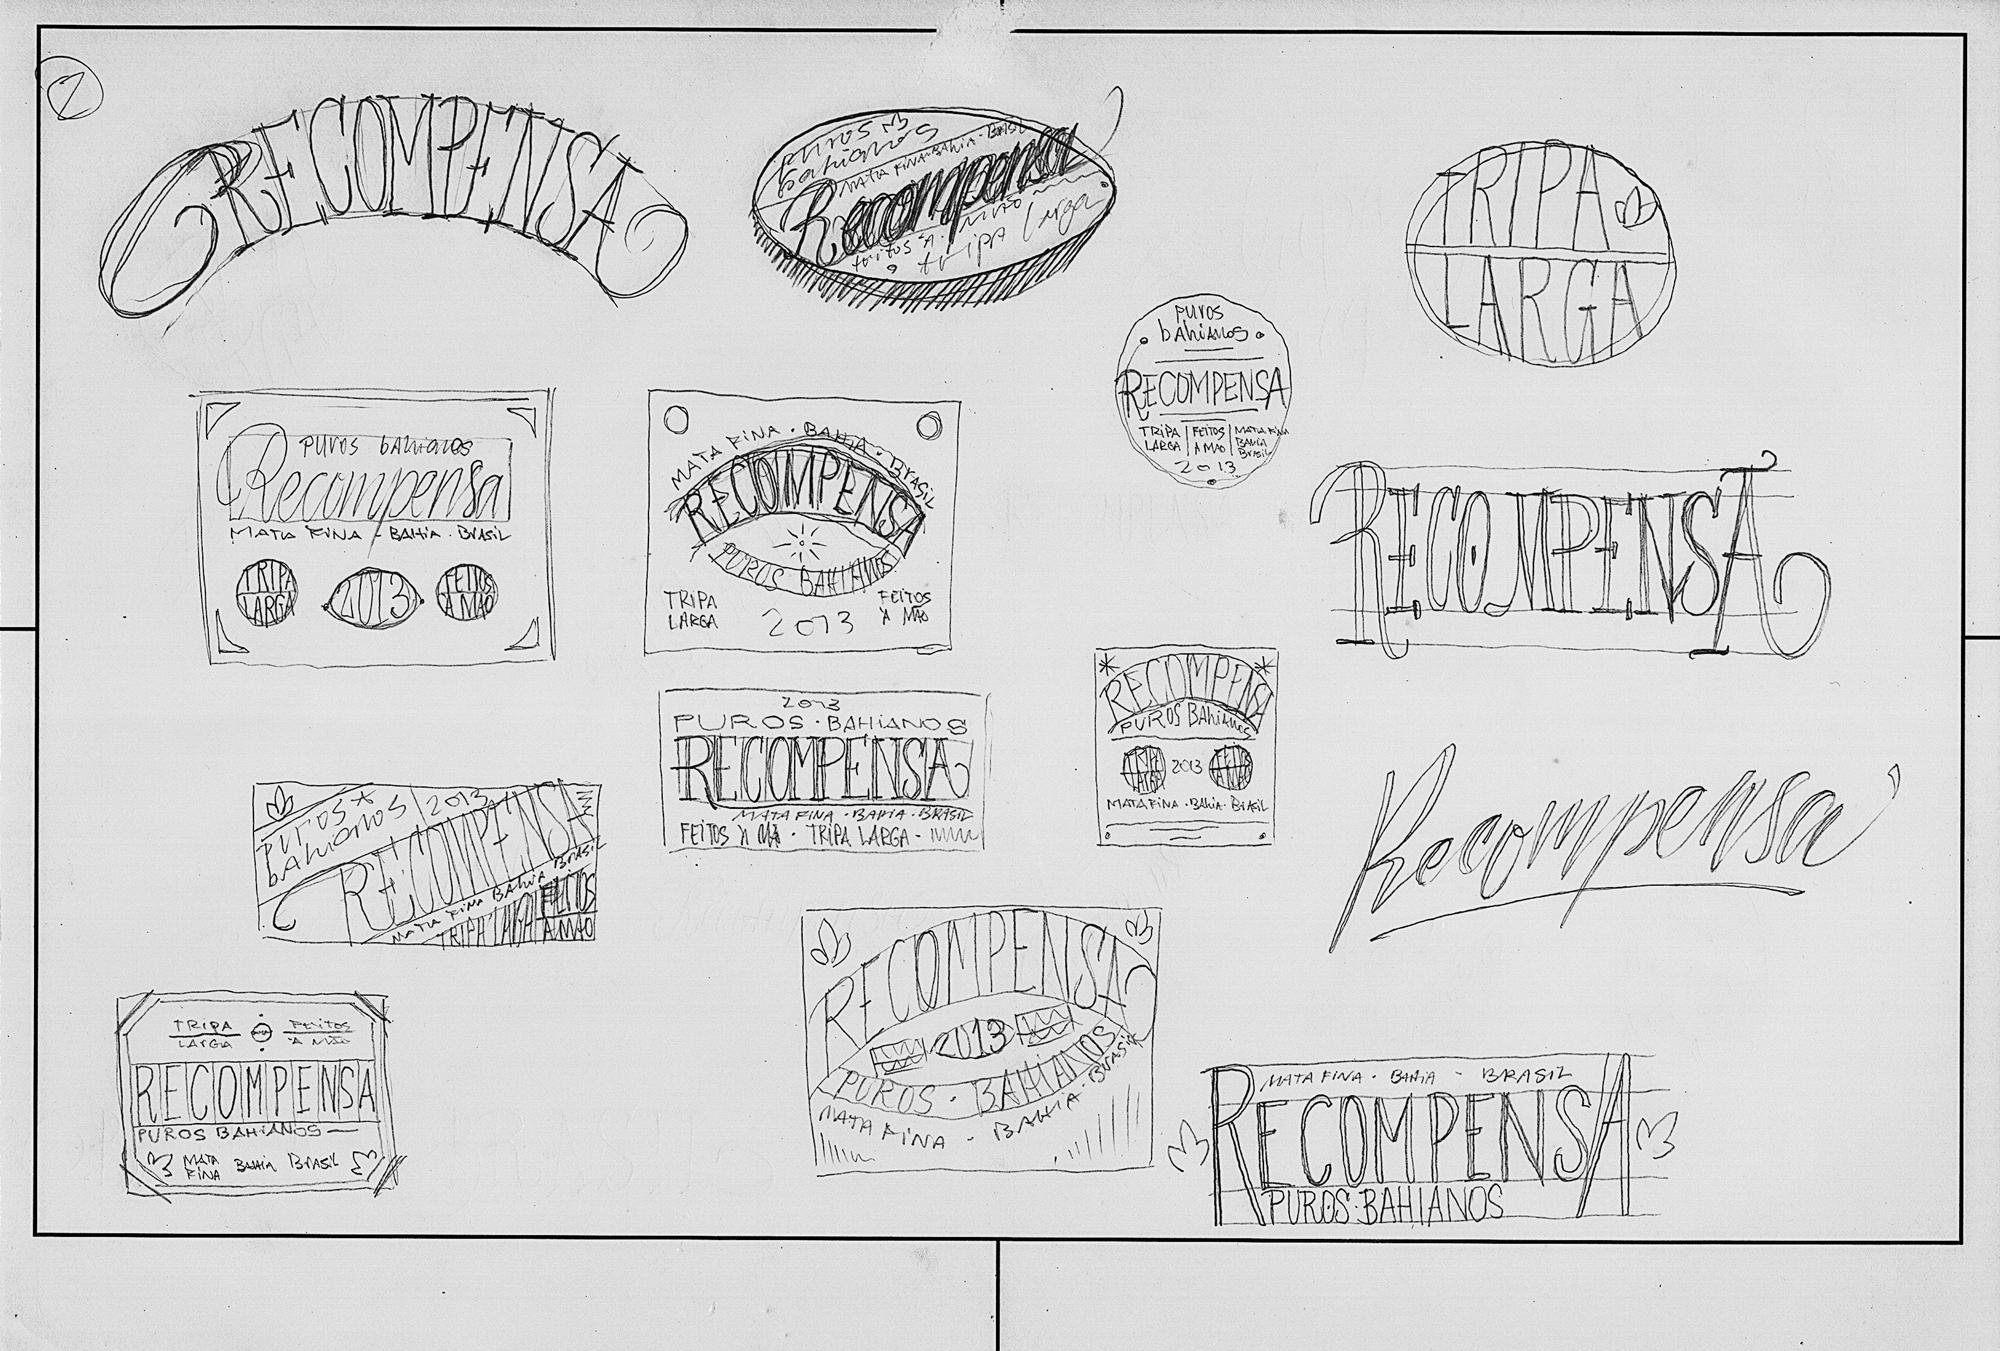 Recompensa Cigars - image 1 - student project